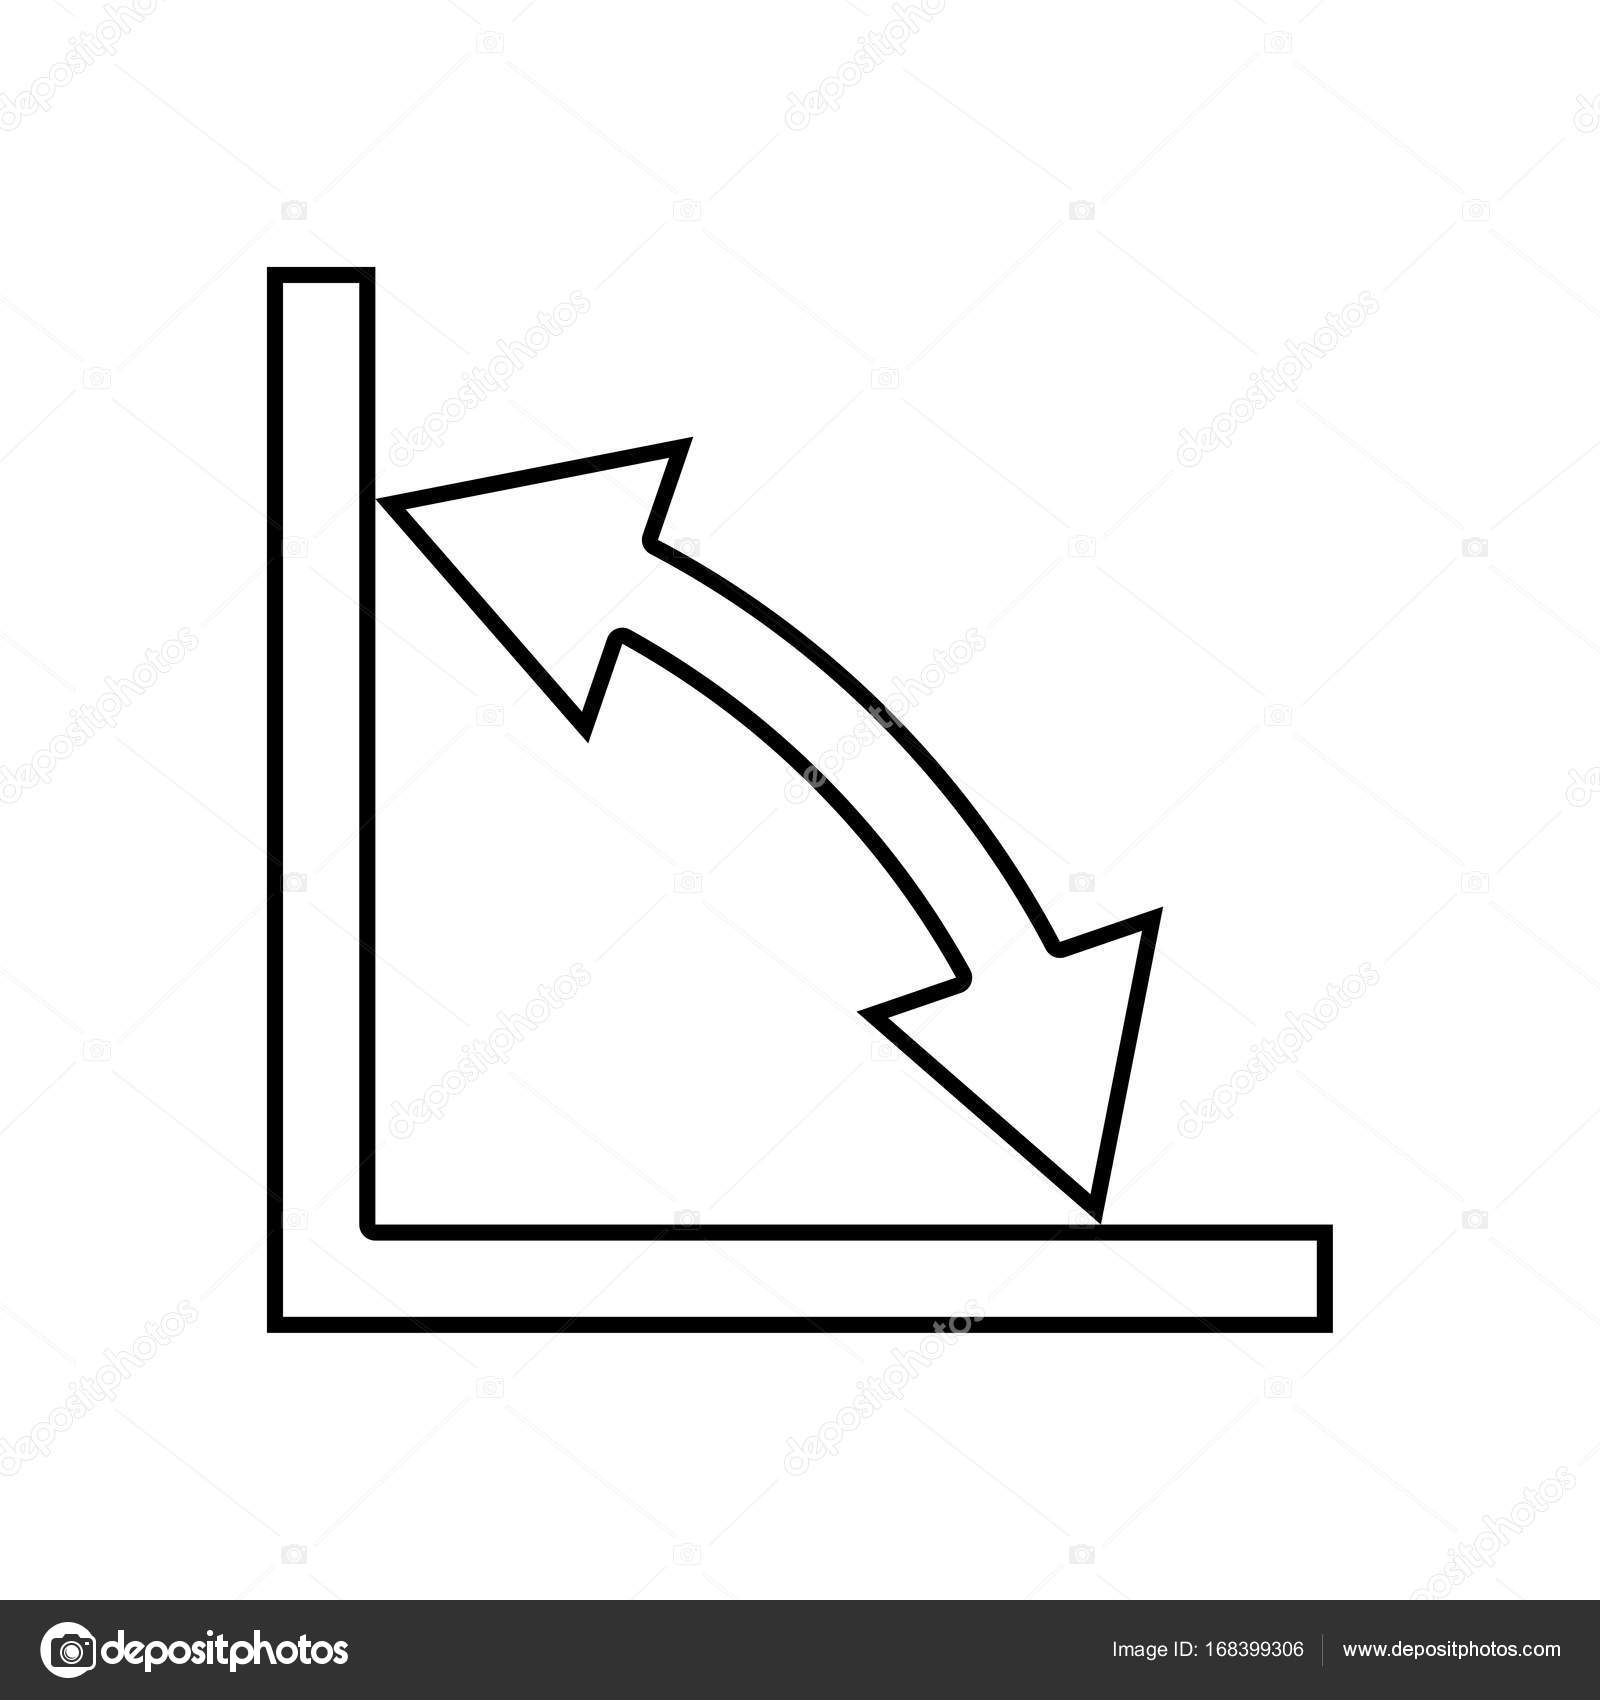 V symbol math images symbol and sign ideas geometry math signs symbols it is black icon stock vector geometry math signs symbols it is biocorpaavc